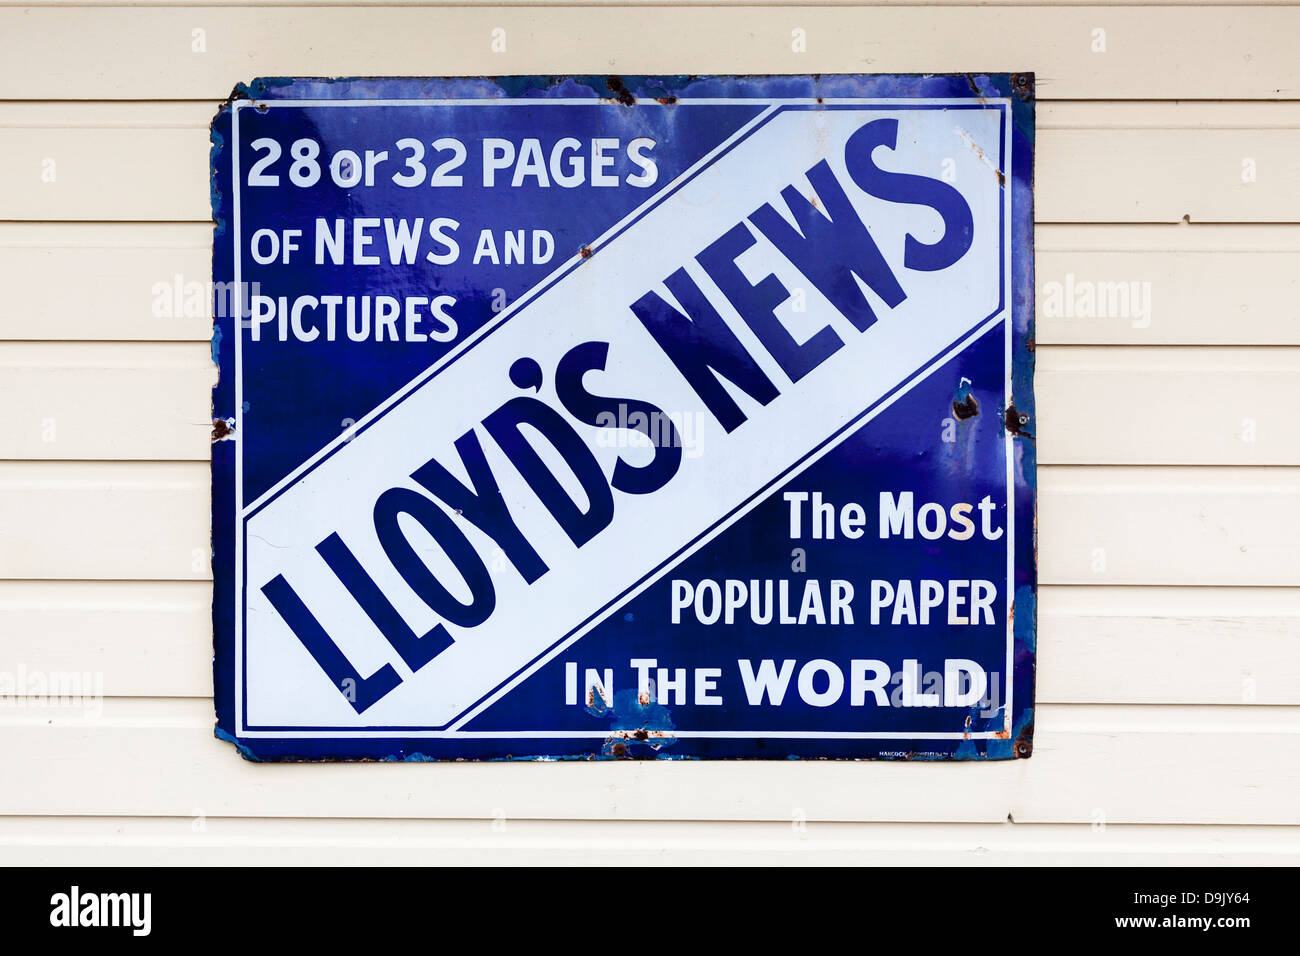 Vintage blue and white enamel sign advertising Lloyd's News, attached to wooden boards - Stock Image